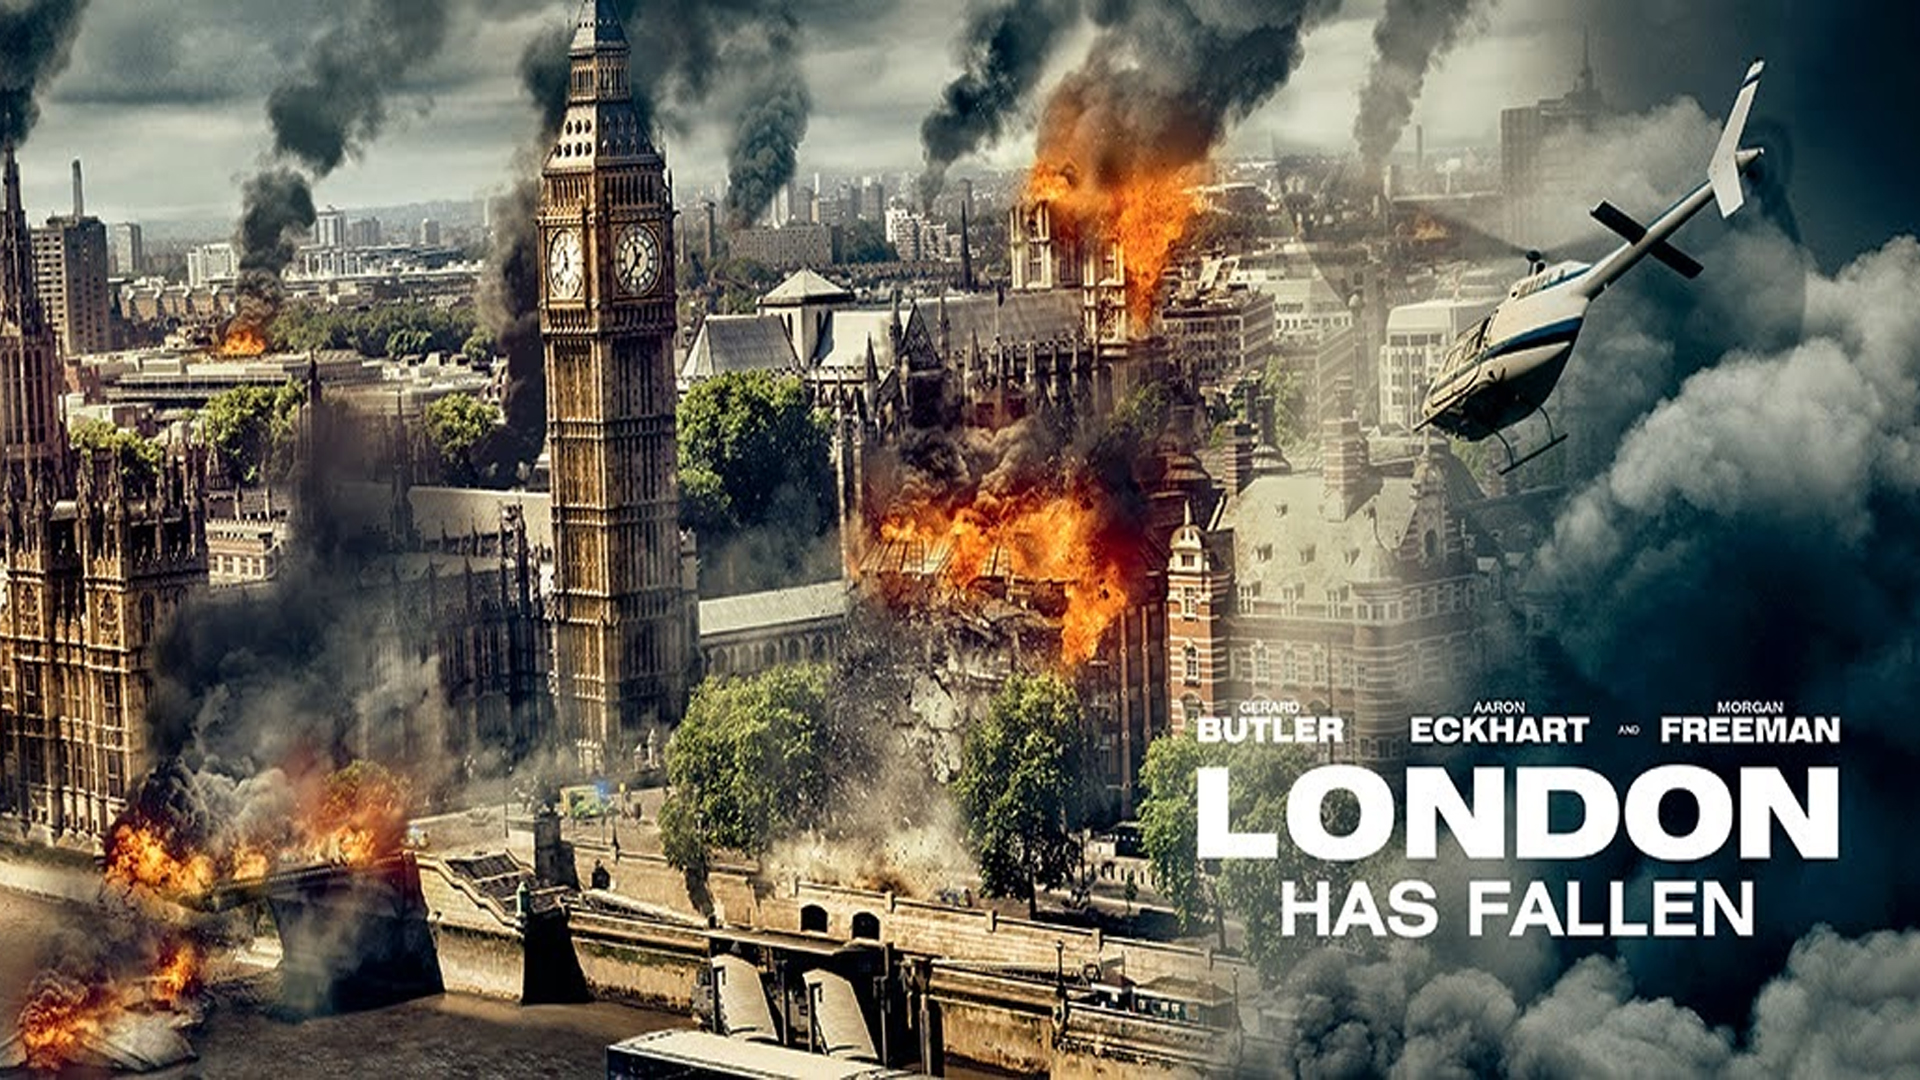 ACTION THRILLER FILM LONDON HAS FALLEN HAS MOVED TO 2016 Film 1920x1080